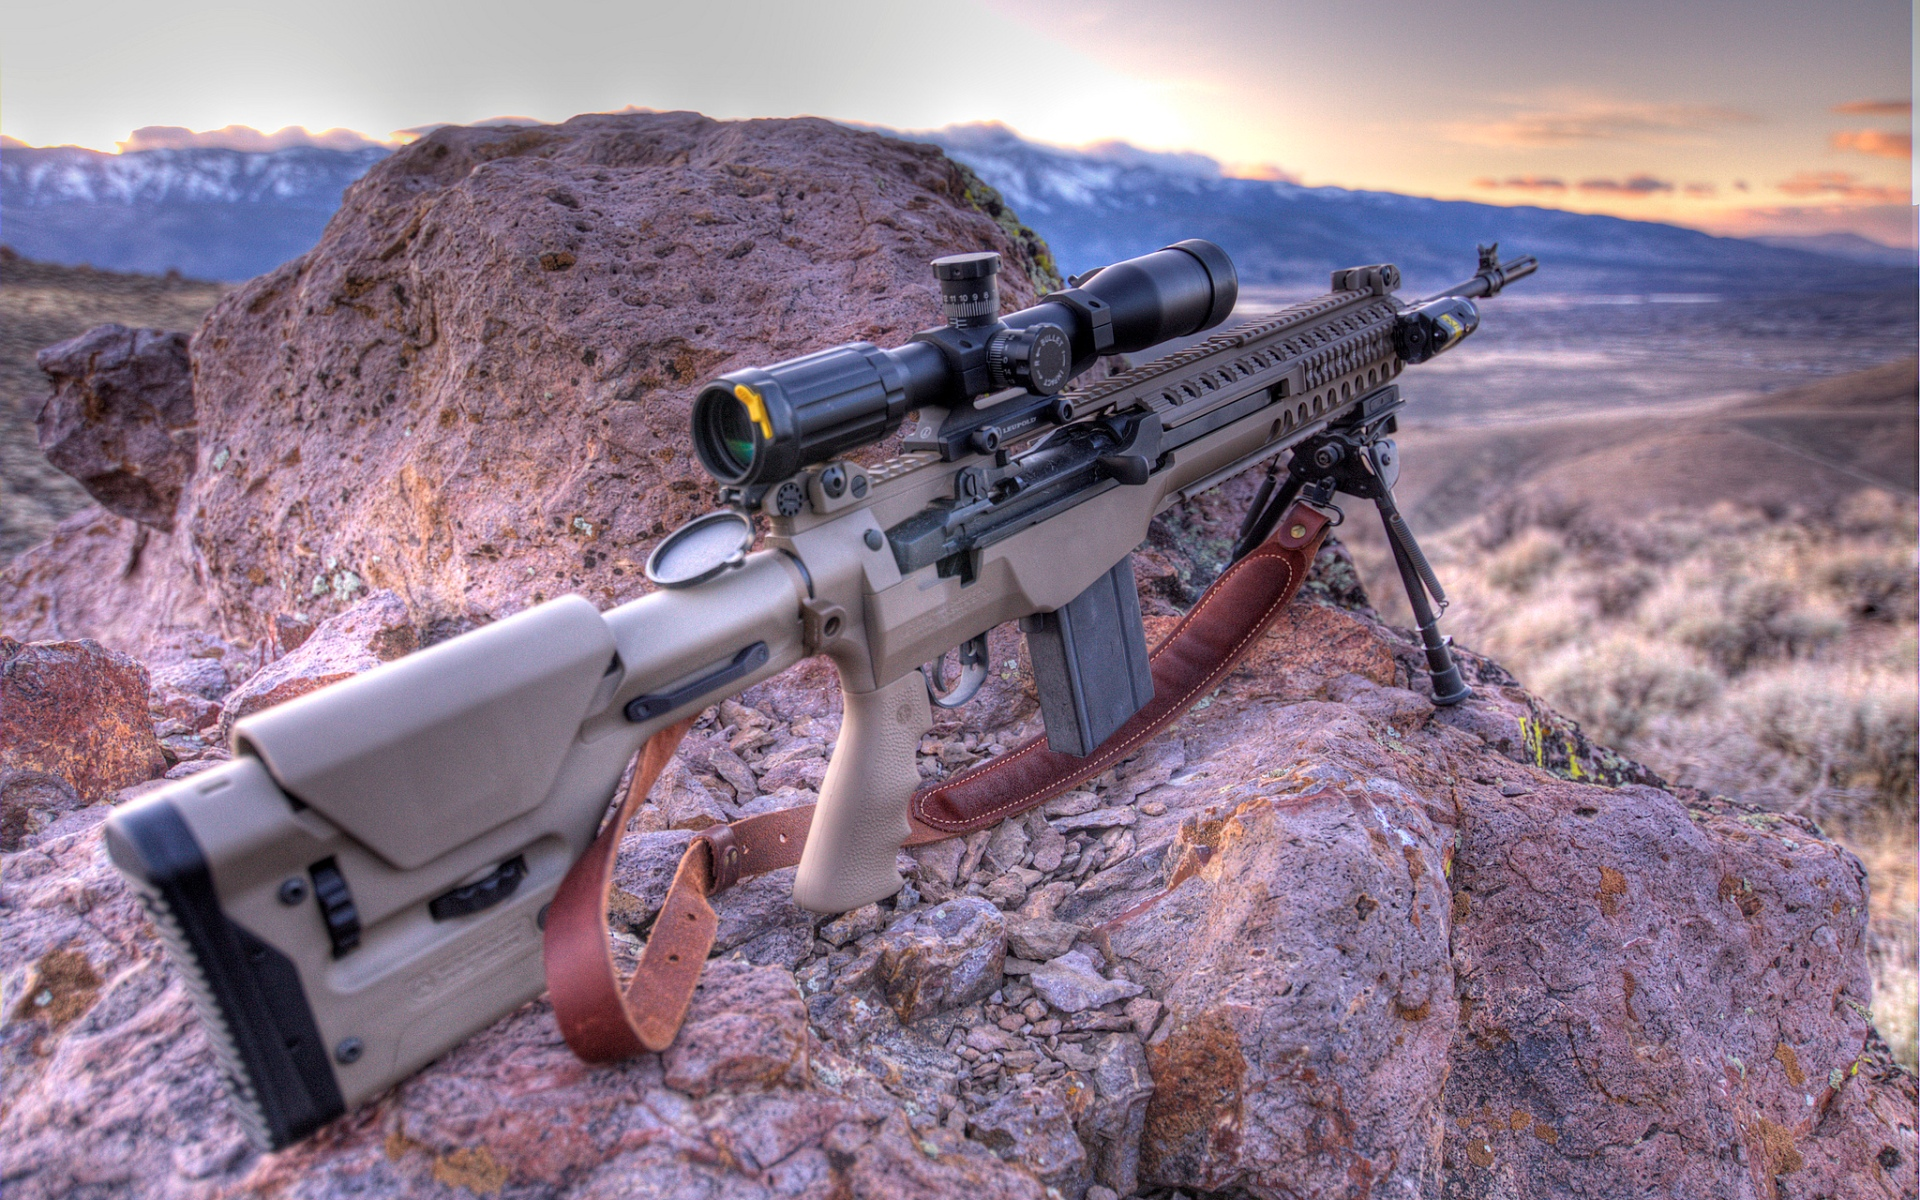 108 Best Images About Weapons Wallpapers On Pinterest: 13 HD Sniper Rifle Guns Wallpapers